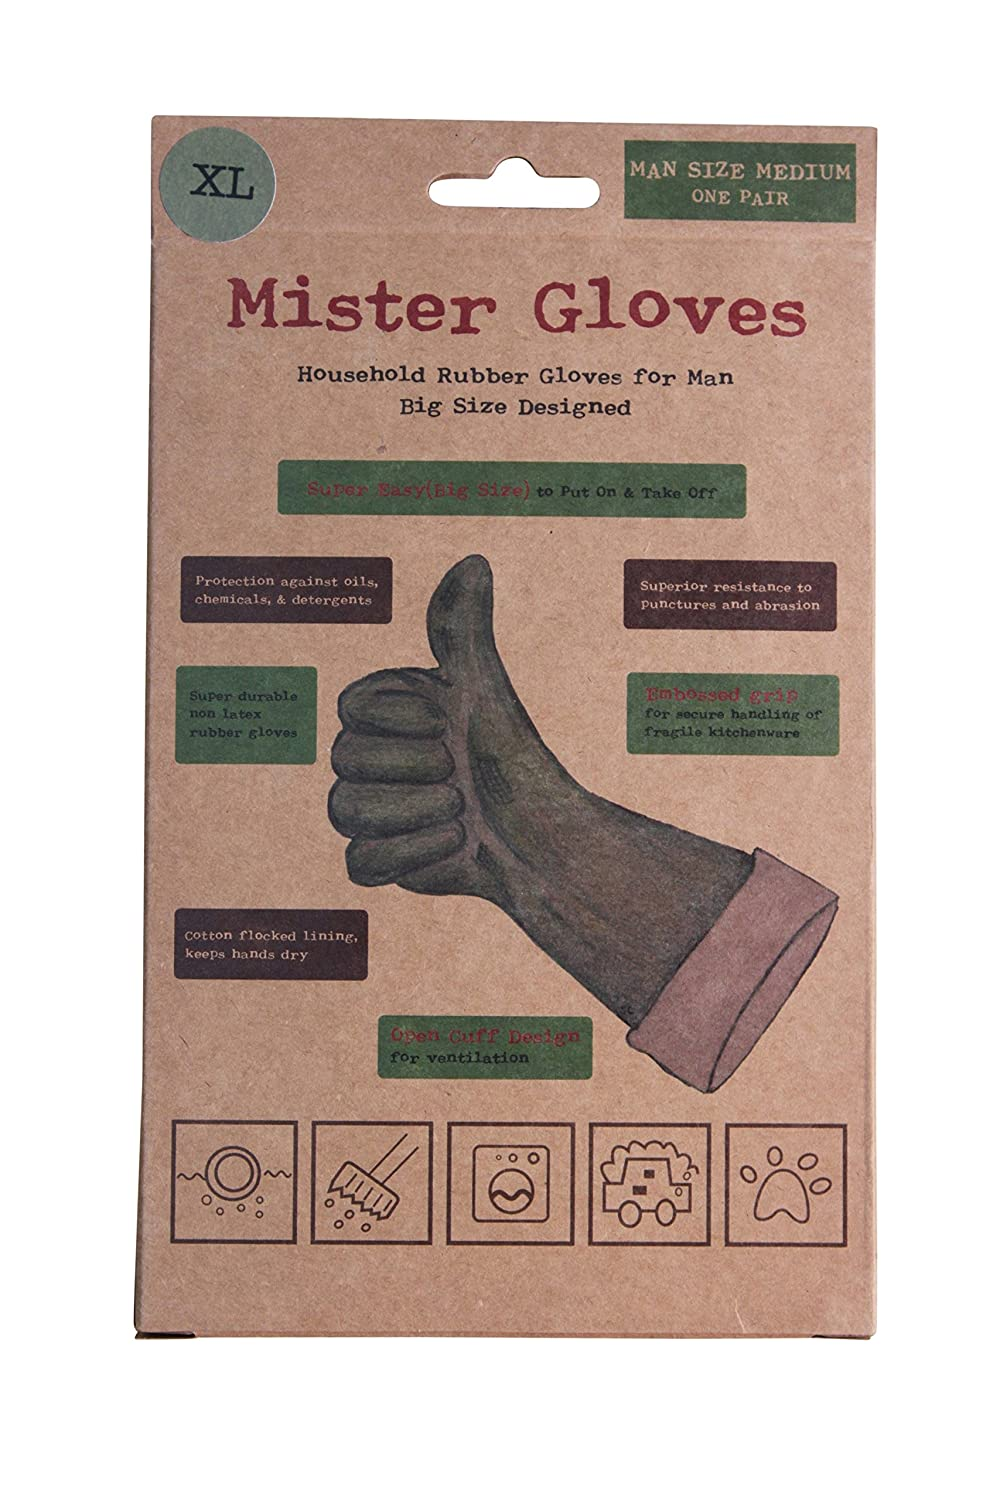 Mister Gloves Heavy Duty Rubber Gloves for Cleaning / Washing Dishes - Size XL = Man Size Medium